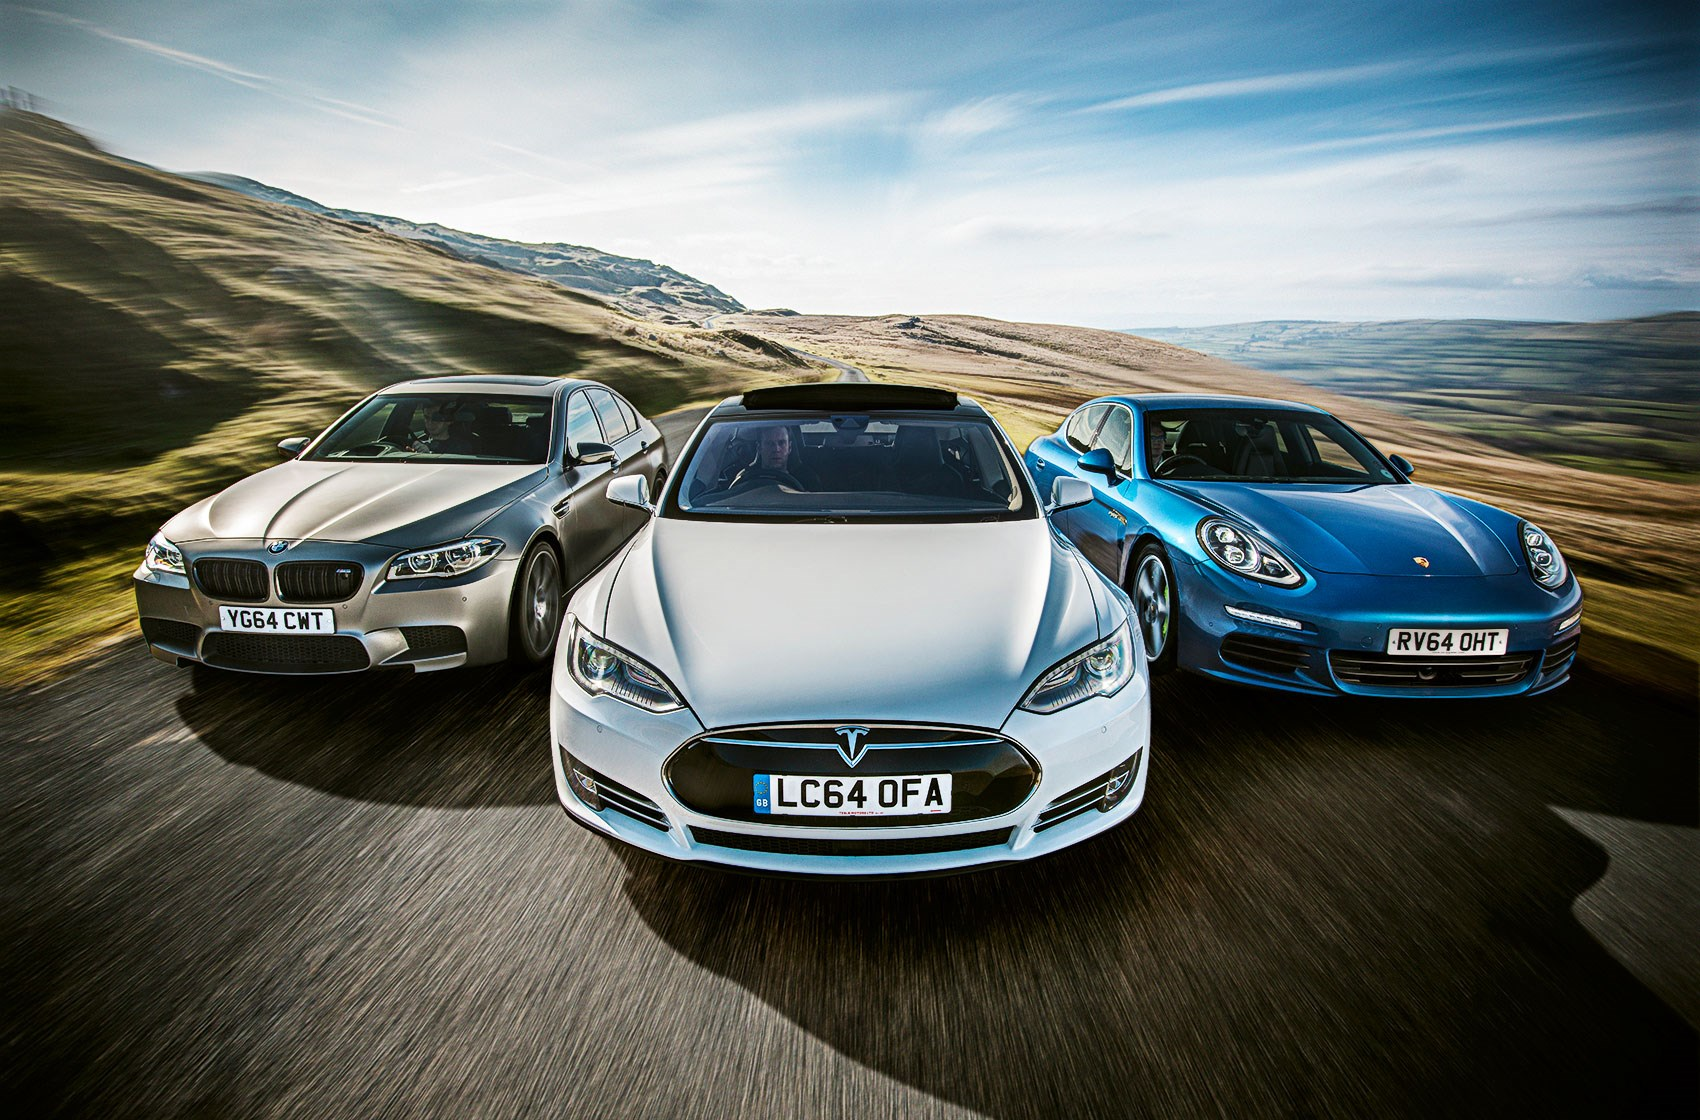 Tesla Model S Vs Bmw M5 Vs Porsche Panamera Triple Test